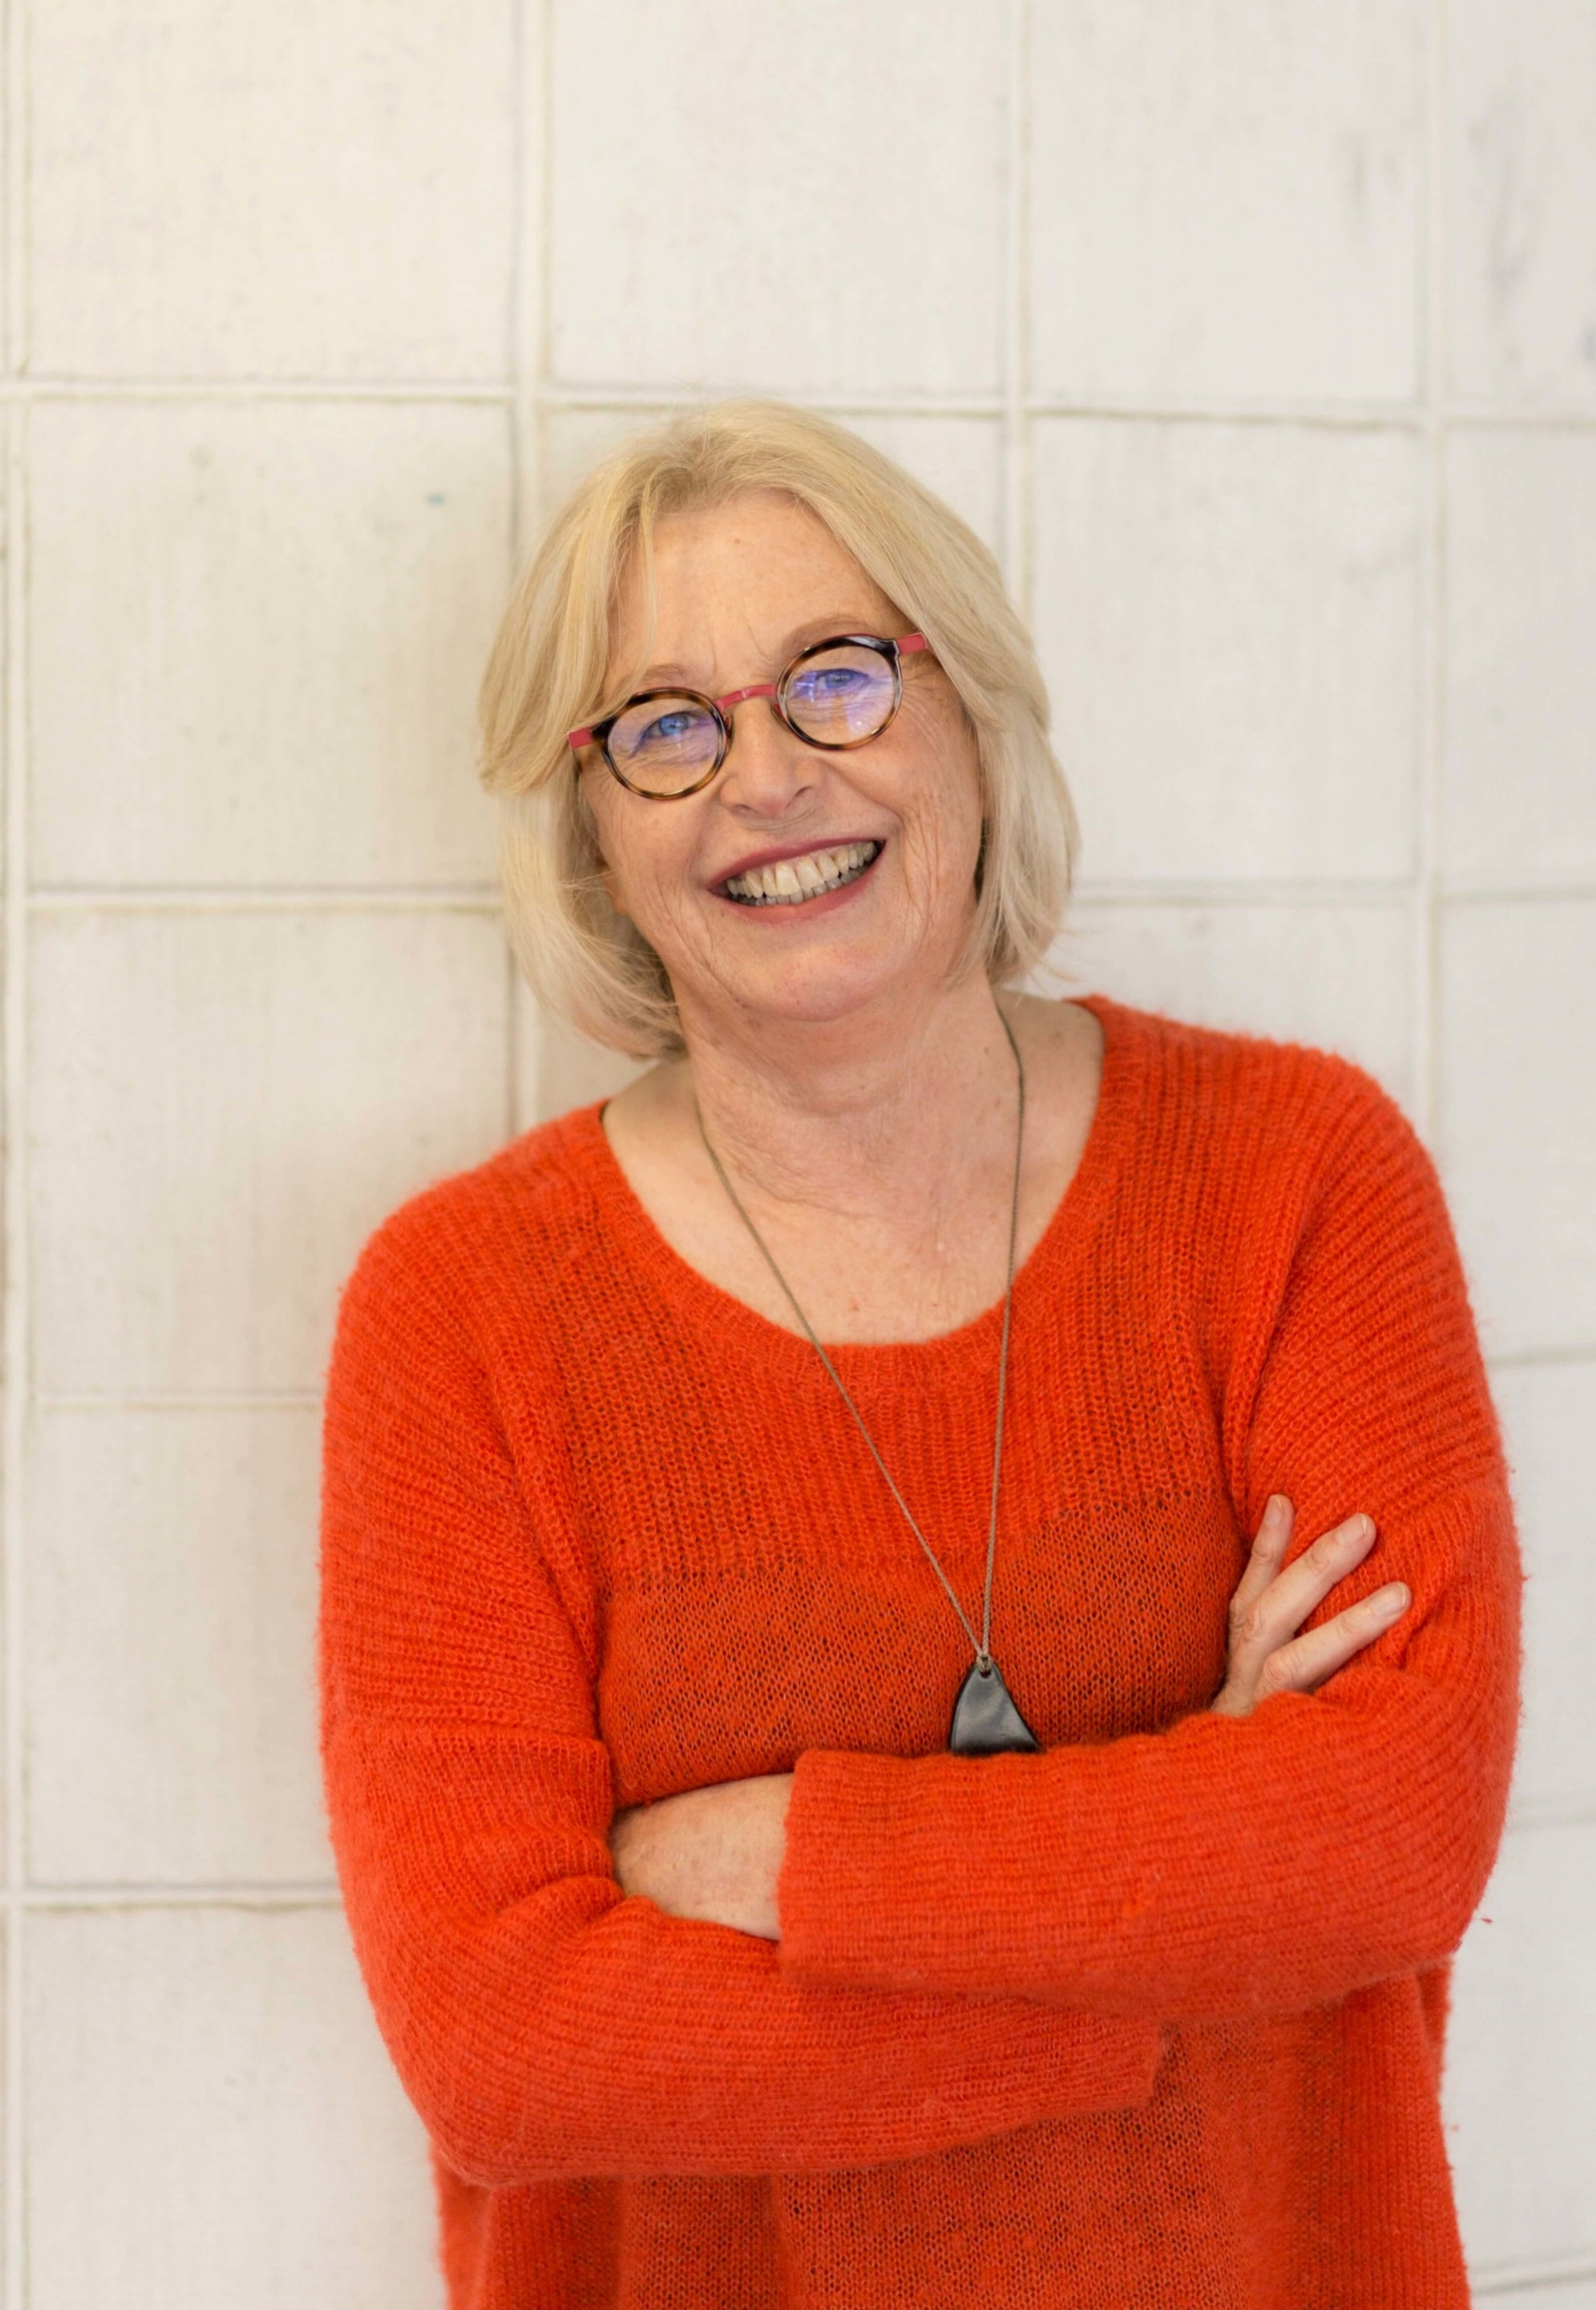 - Gaylene Preston is a national treasure, with an exceptional career over more than three decades. An innovative writer, director, and producer, Gaylene has insisted that it is possible to live in New Zealand and contribute New Zealand stories to global cinema, and her award-winning work has screened extensively at international festivals including Venice, Sundance, Toronto.In 2001 Gaylene was the first filmmaker to receive an Arts Foundation Laureate Award and in 2002 she was made an Officer of the NZ Order of Merit for services to the film industry. In 2010 she received the inaugural lifetime achievement award for outstanding contribution to documentary from Documentary Edge. She also received a Screenwriters Mentorship Award and a WIFT NZ Award for outstanding contribution to the New Zealand Screen Industry.